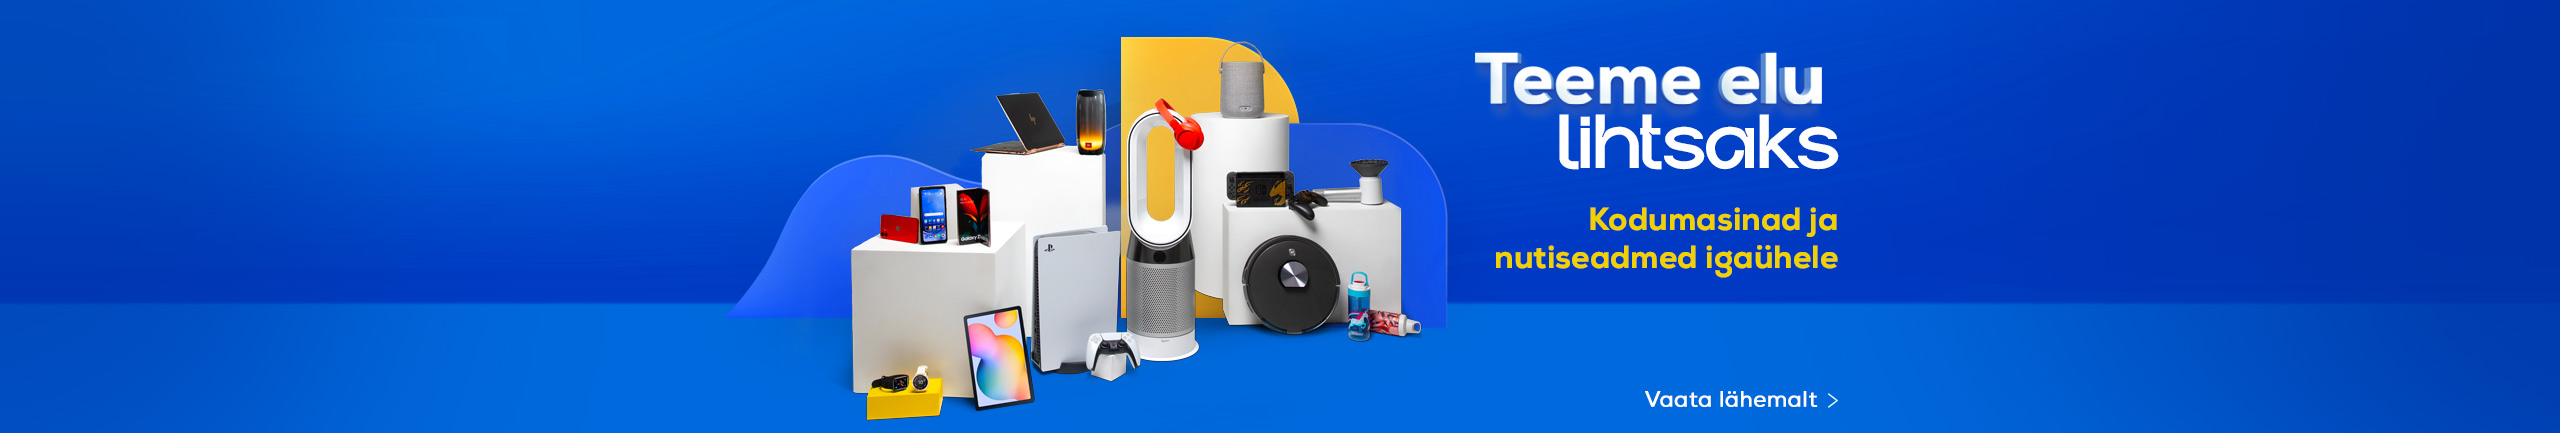 NPL We make life easy! Home appliances and smart devices for everyone